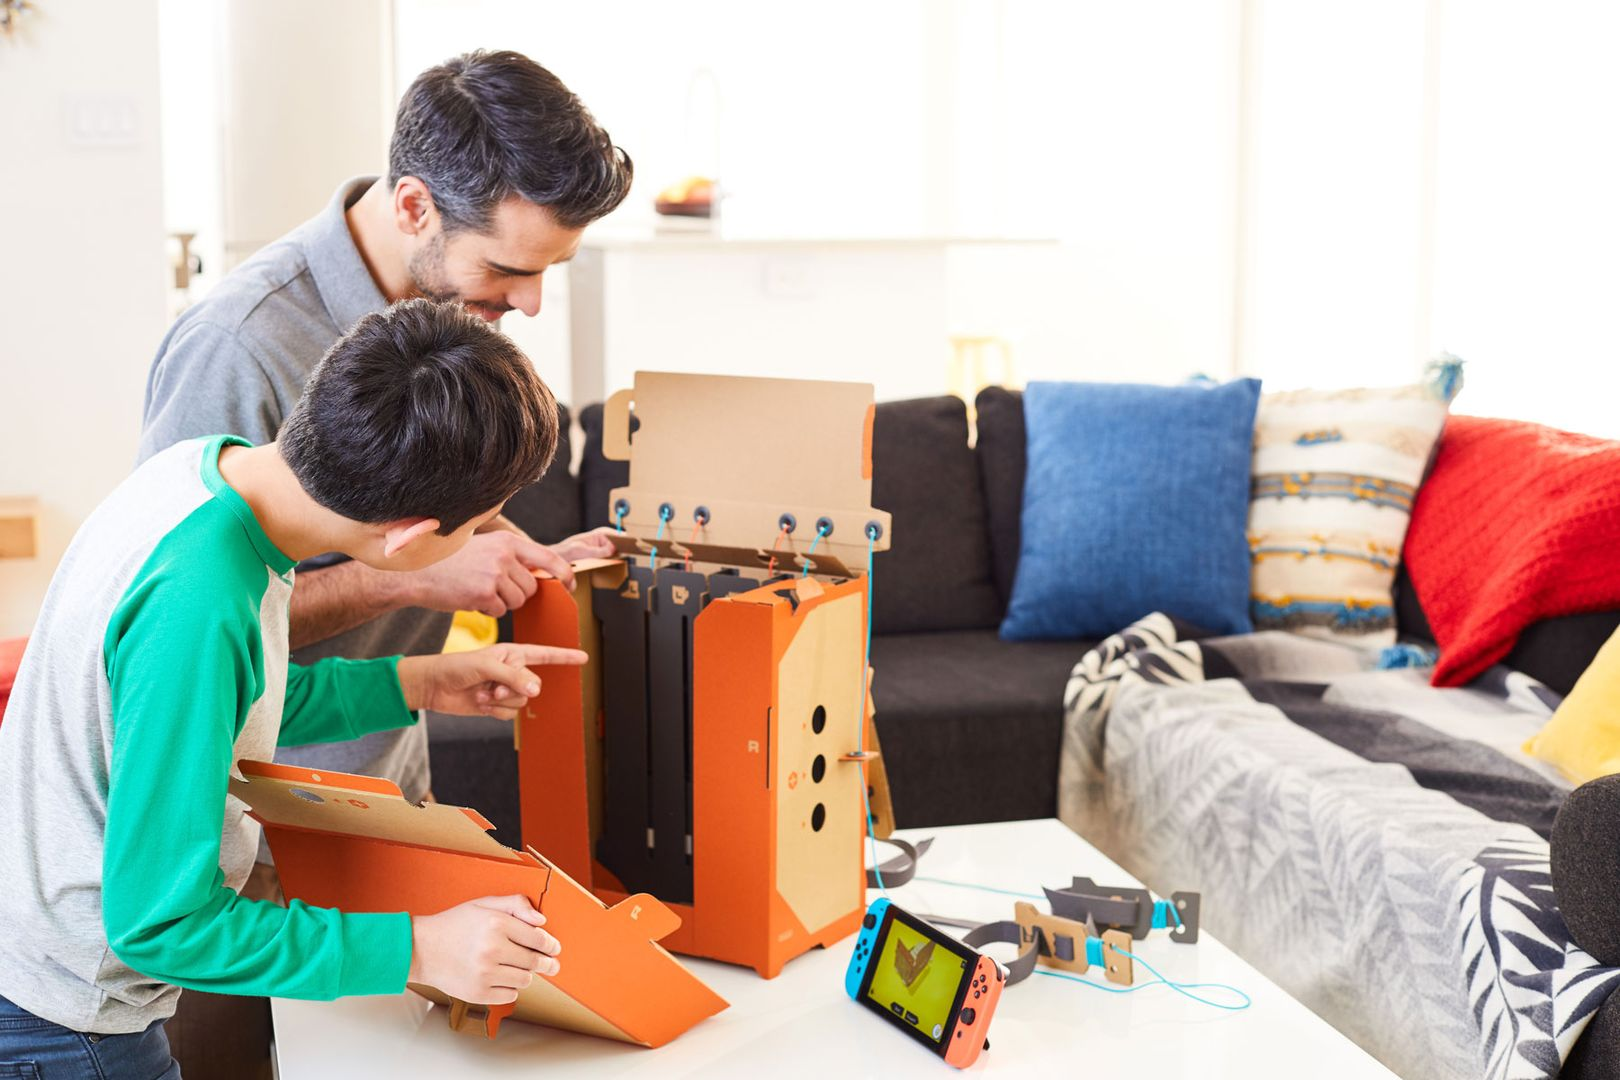 Nintendo Labo now available for pre-order at some U.S. retailers